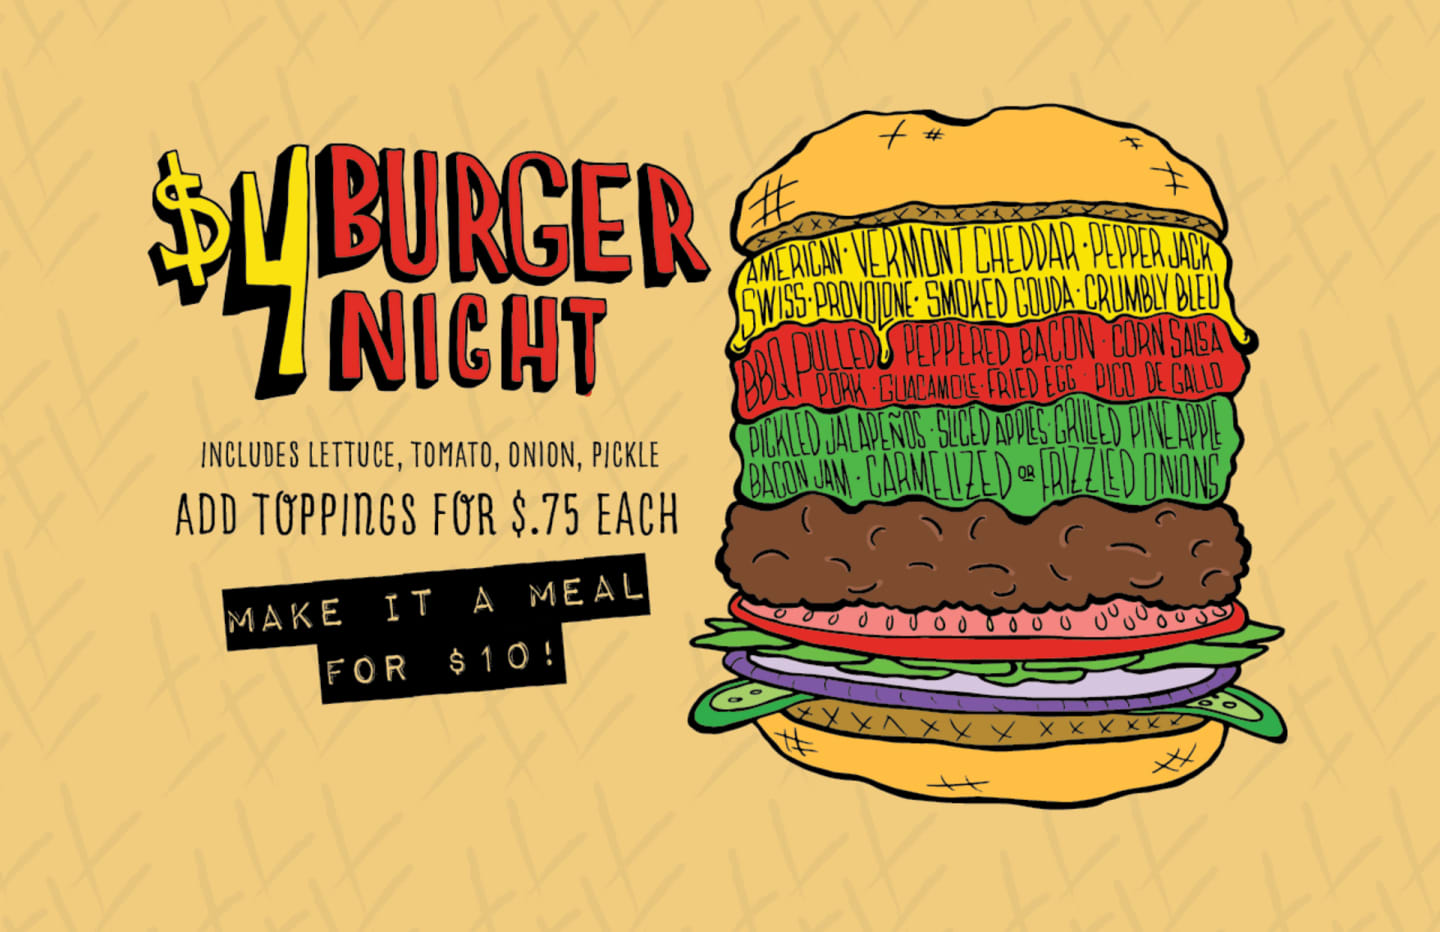 $4 burger night includes lettuce, tomato, onion, pickle - add toppings for 75¢ each - make it a meal for $10